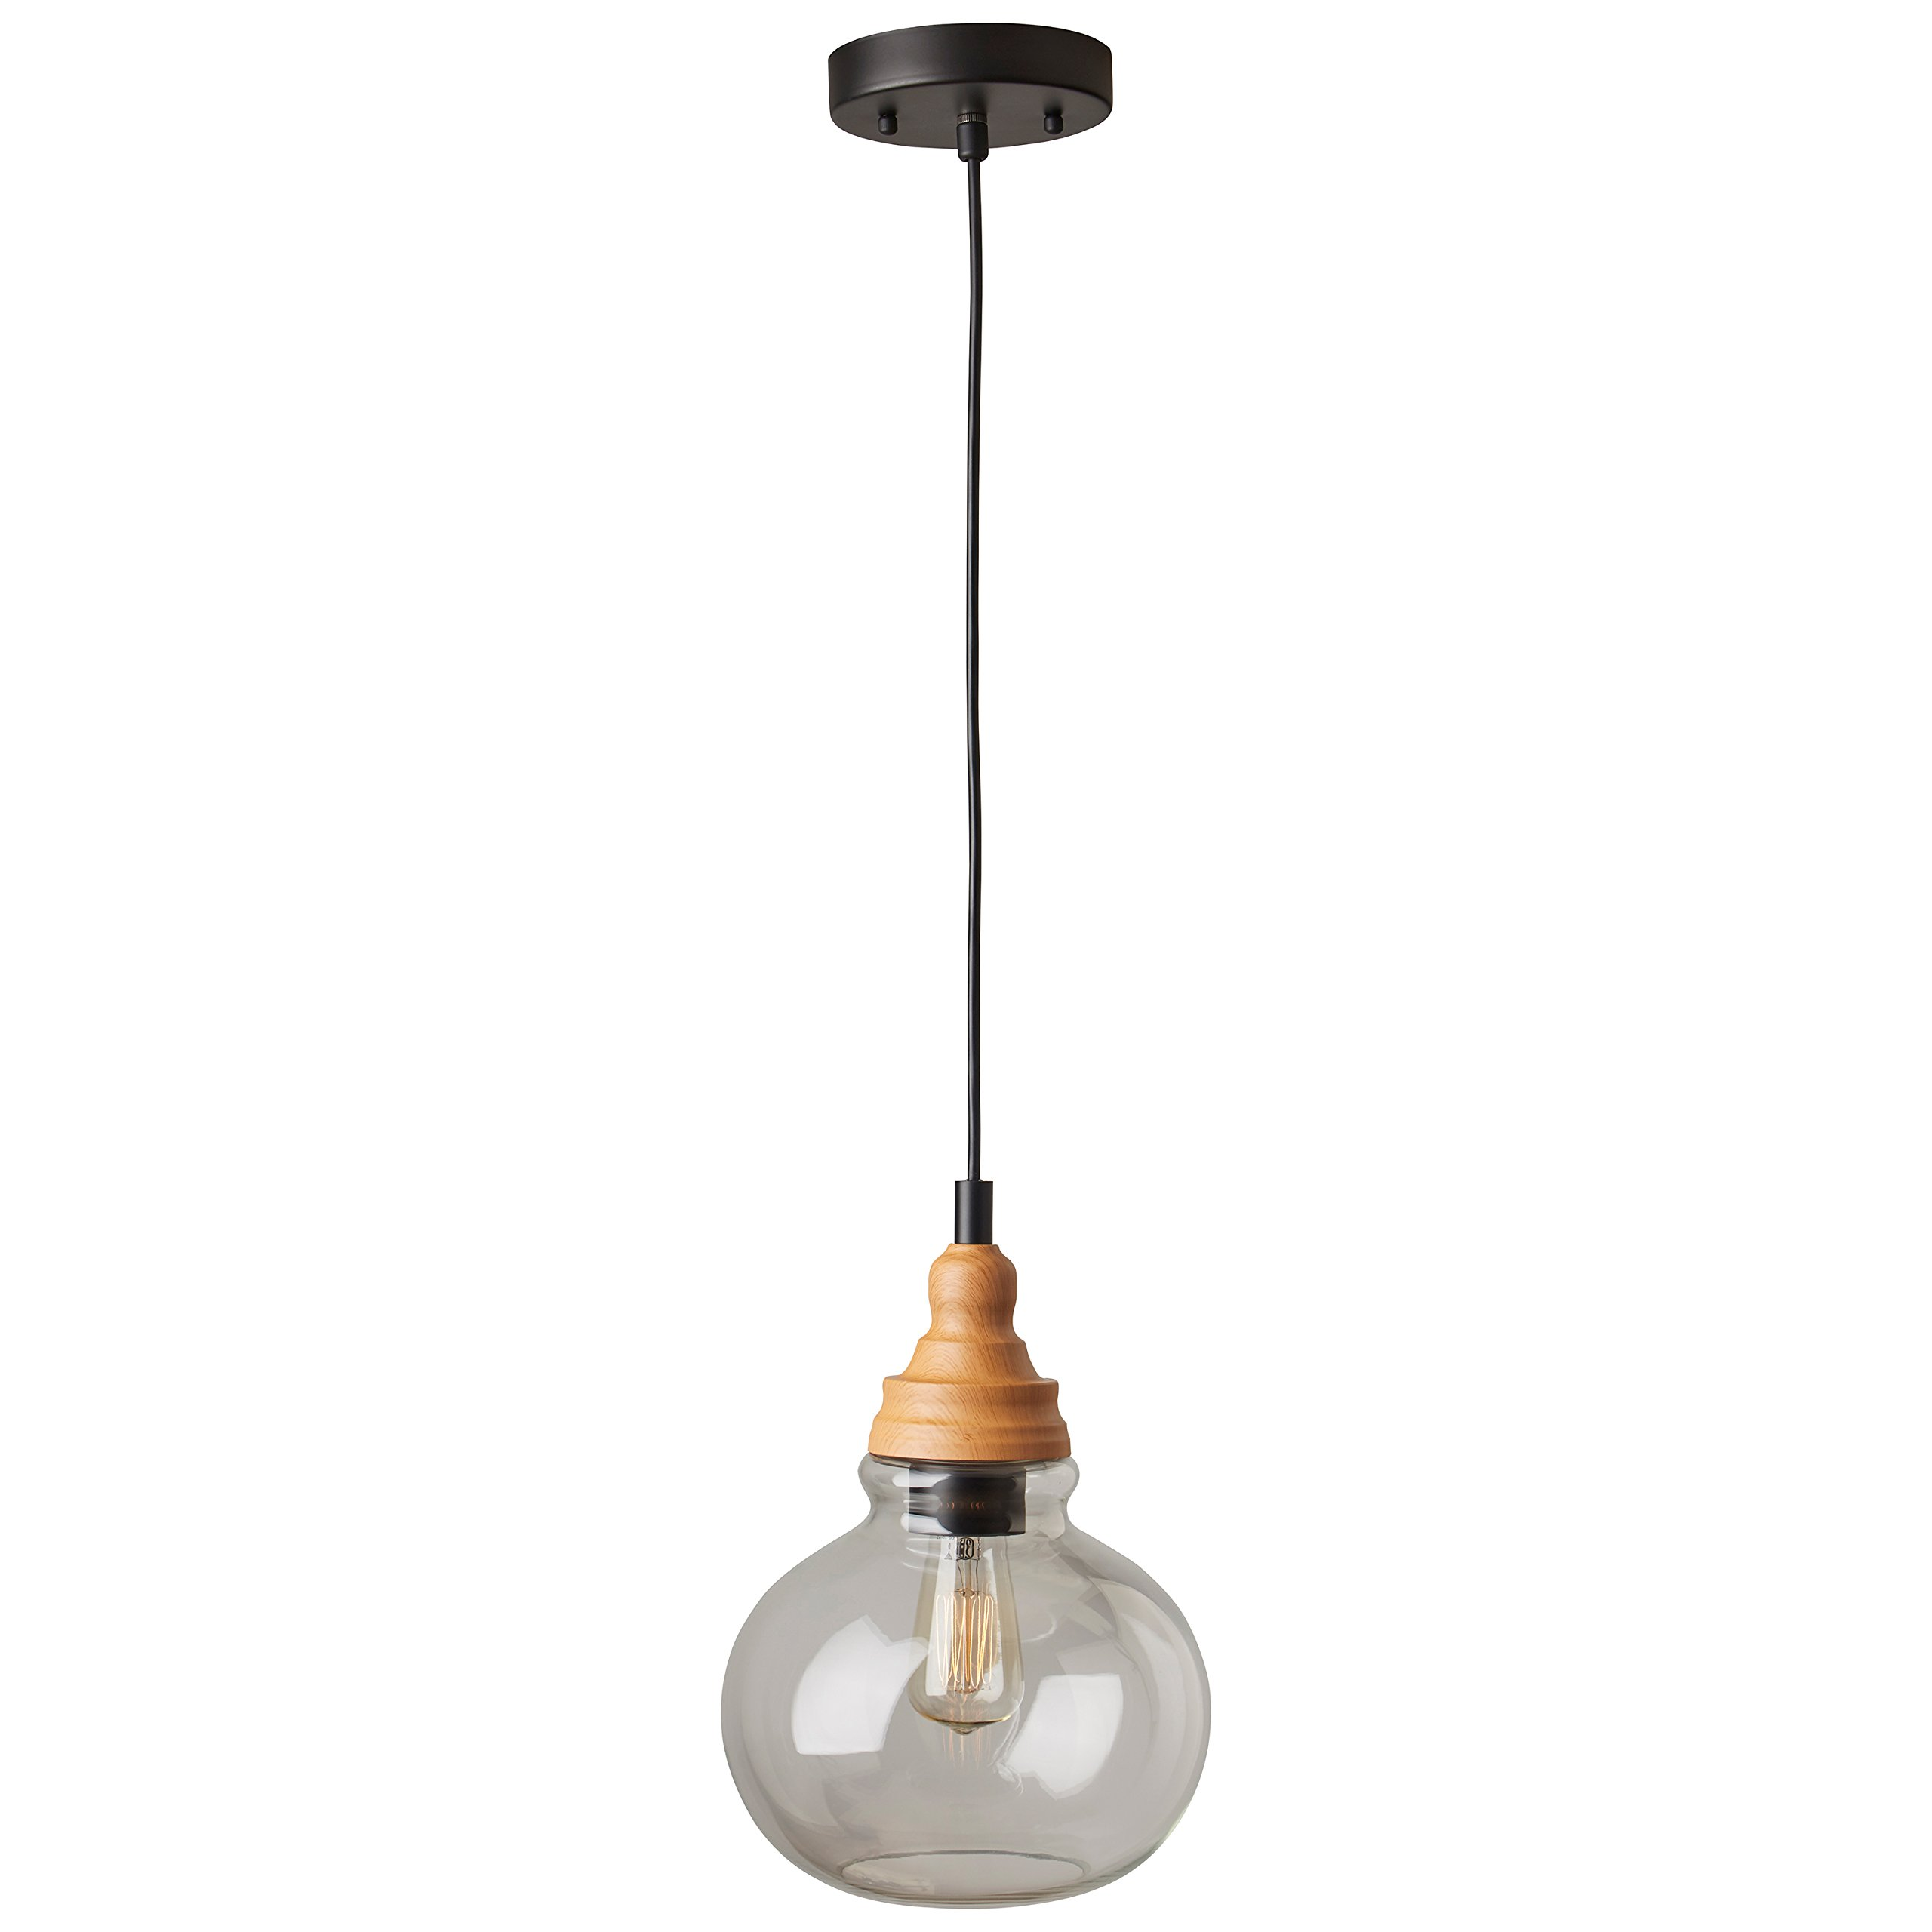 Rivet Glass Pendant With Bulb, 14.25''-60''H, Brown and Black by Rivet (Image #1)